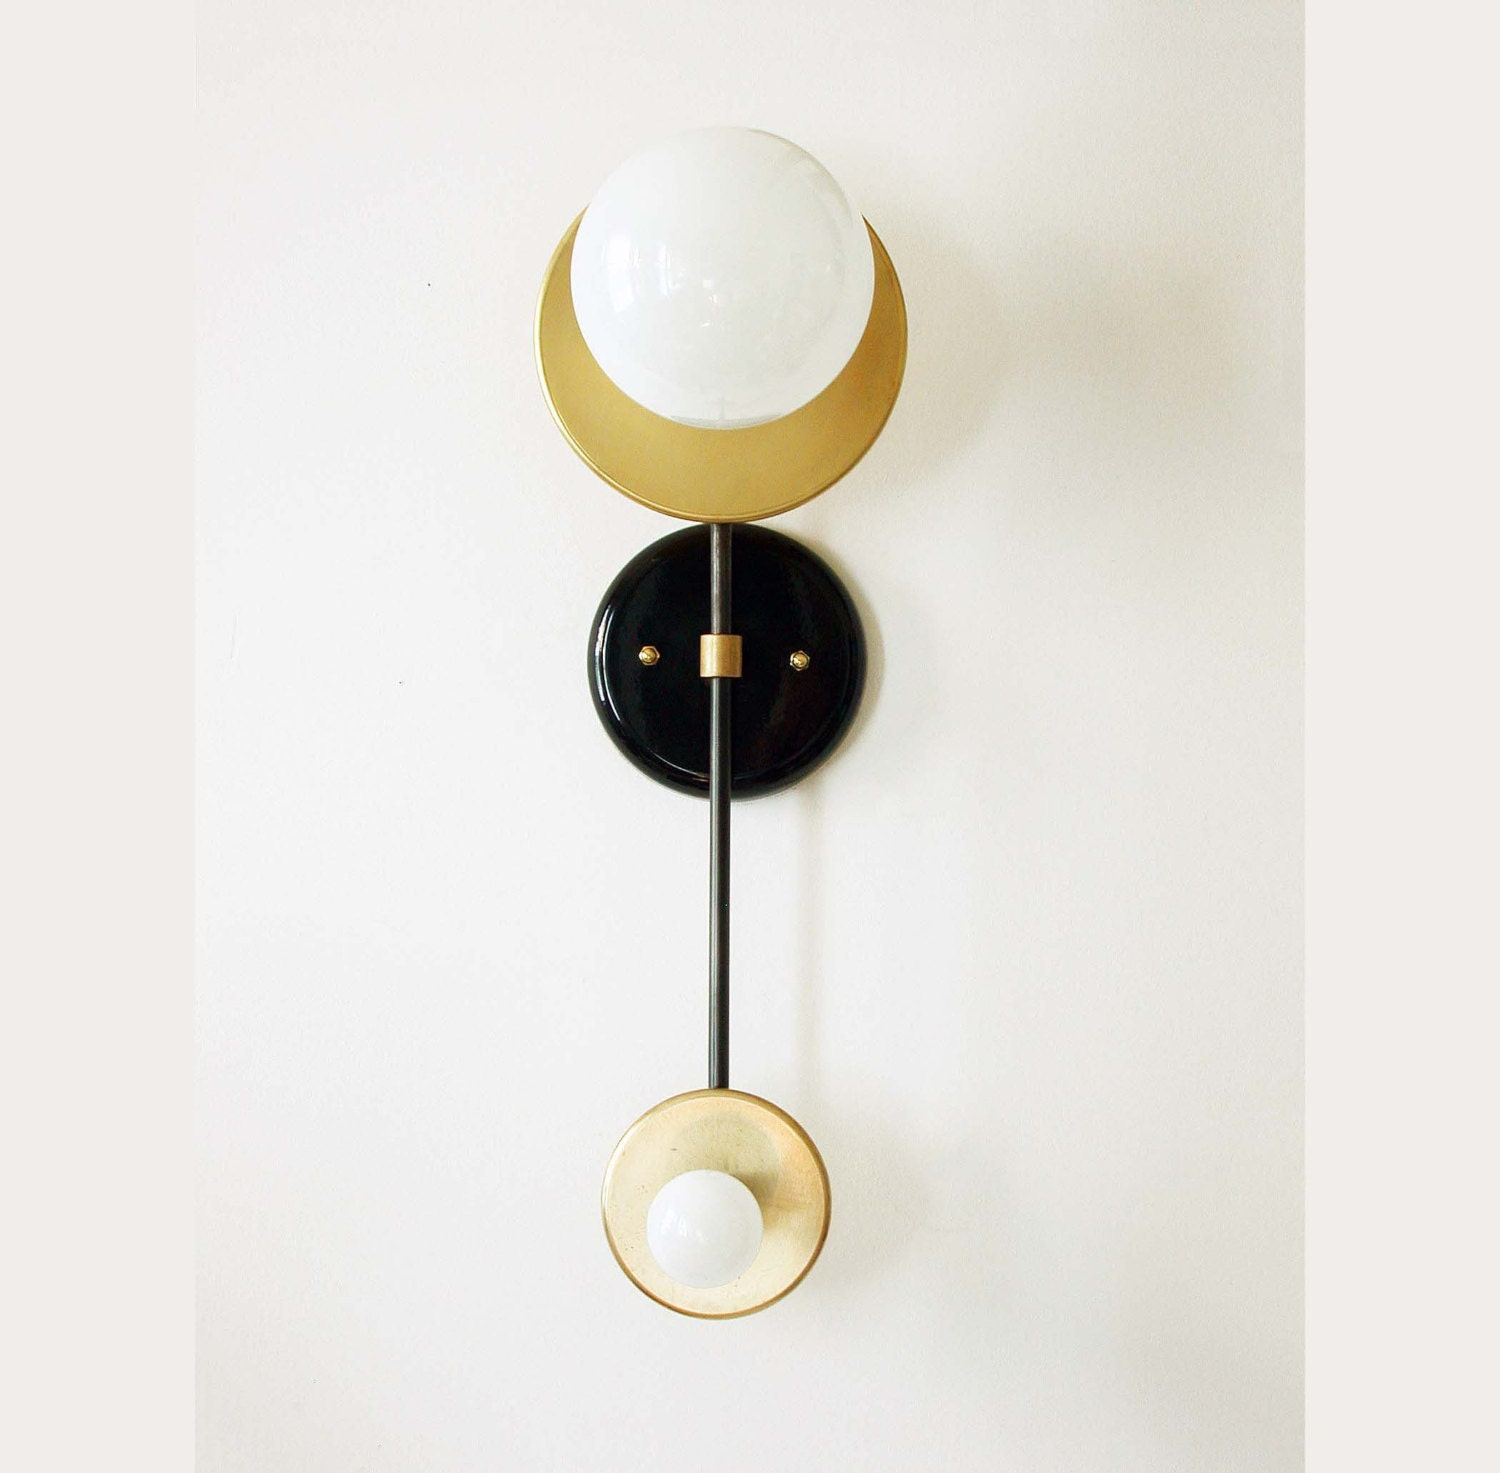 Double Wall Brass Sconce Lamp Wall Light Fixture Bedroom